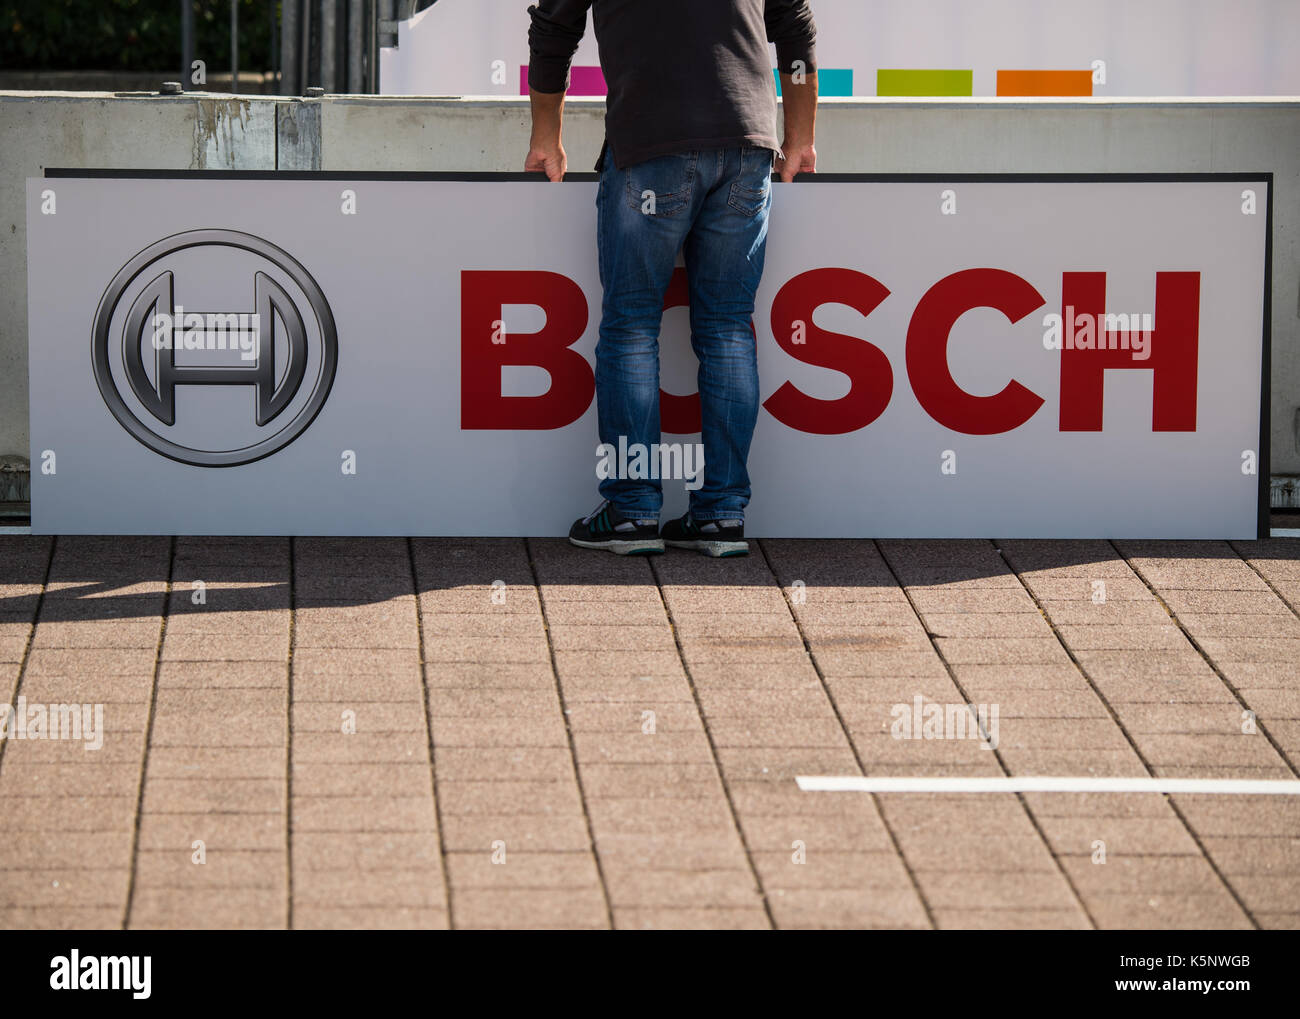 The logo of car parts supplier Bosch is visible on a box on the